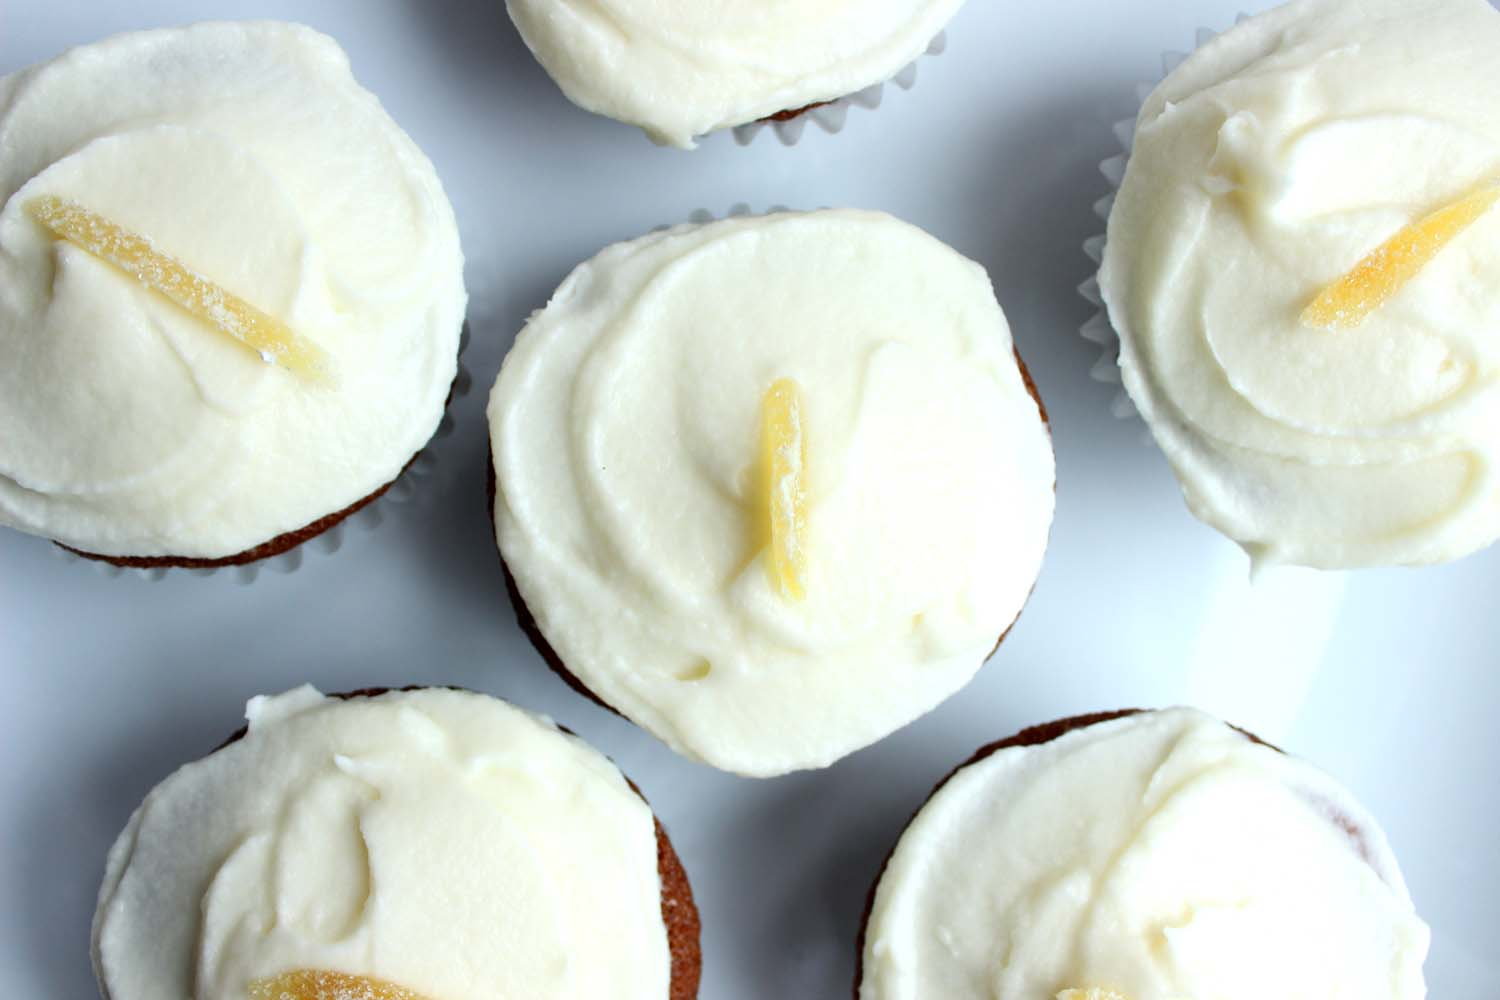 Lemon Ginger Molasses Cupcakes   | Image:   Laura Messersmith